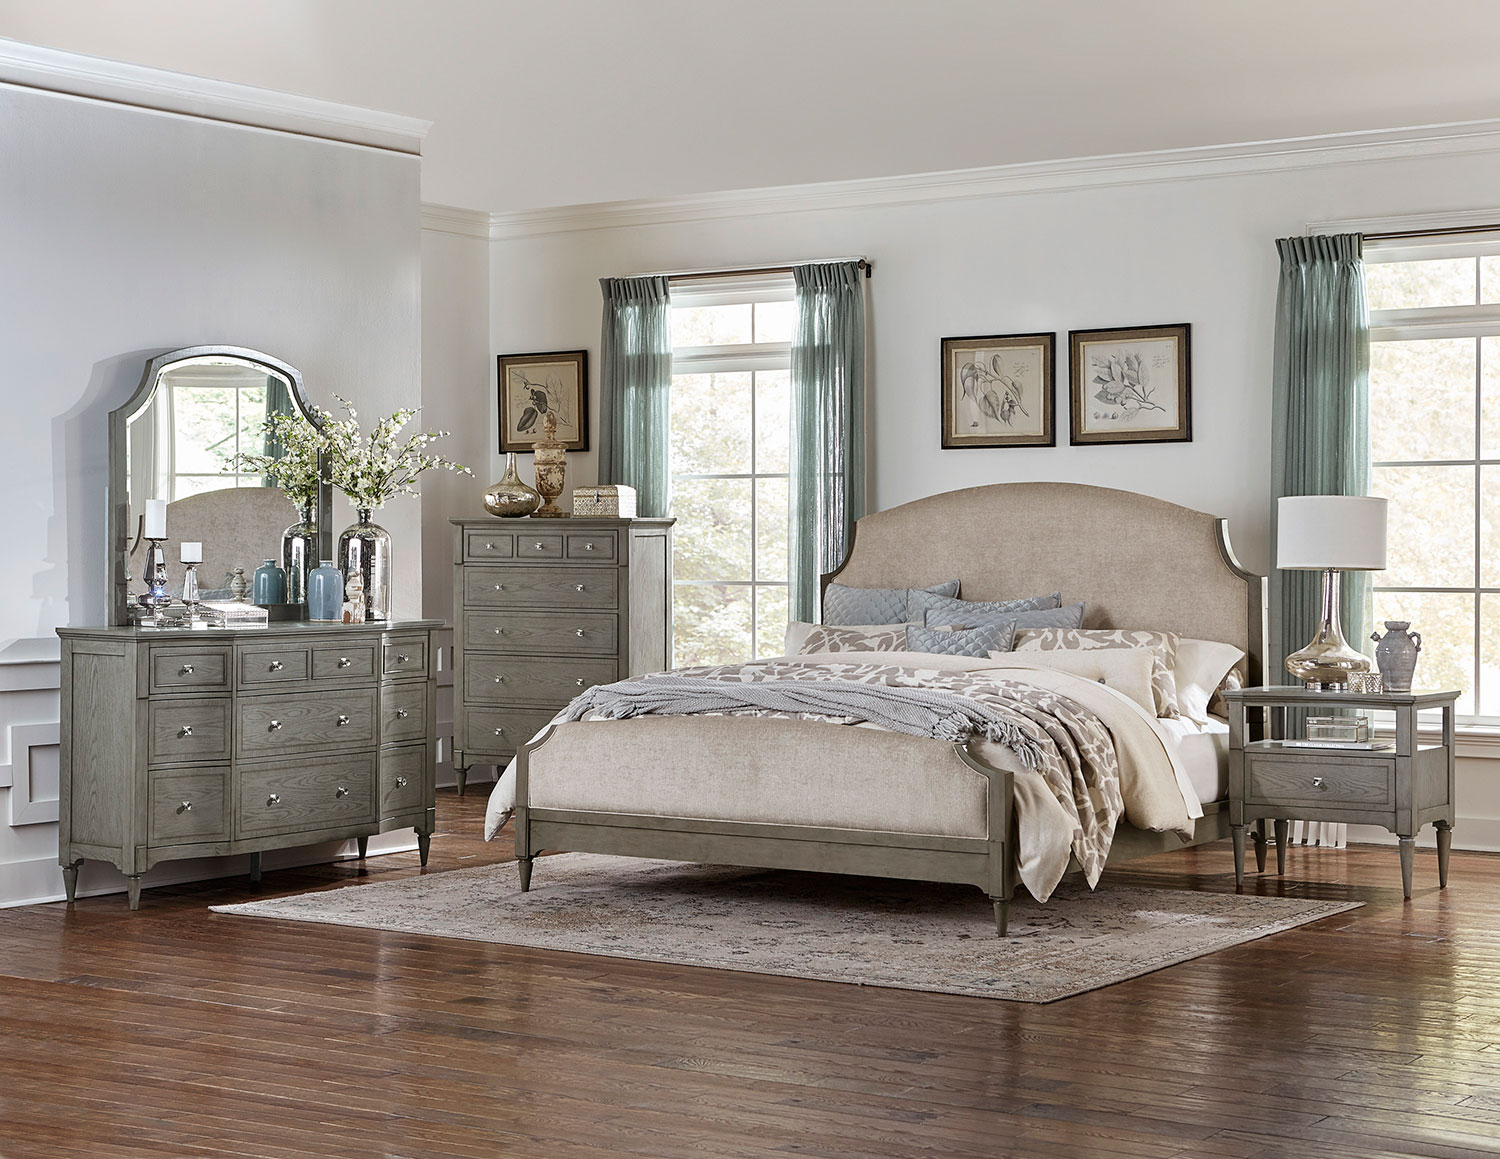 Custom Upholstered Bedroom Set Decor